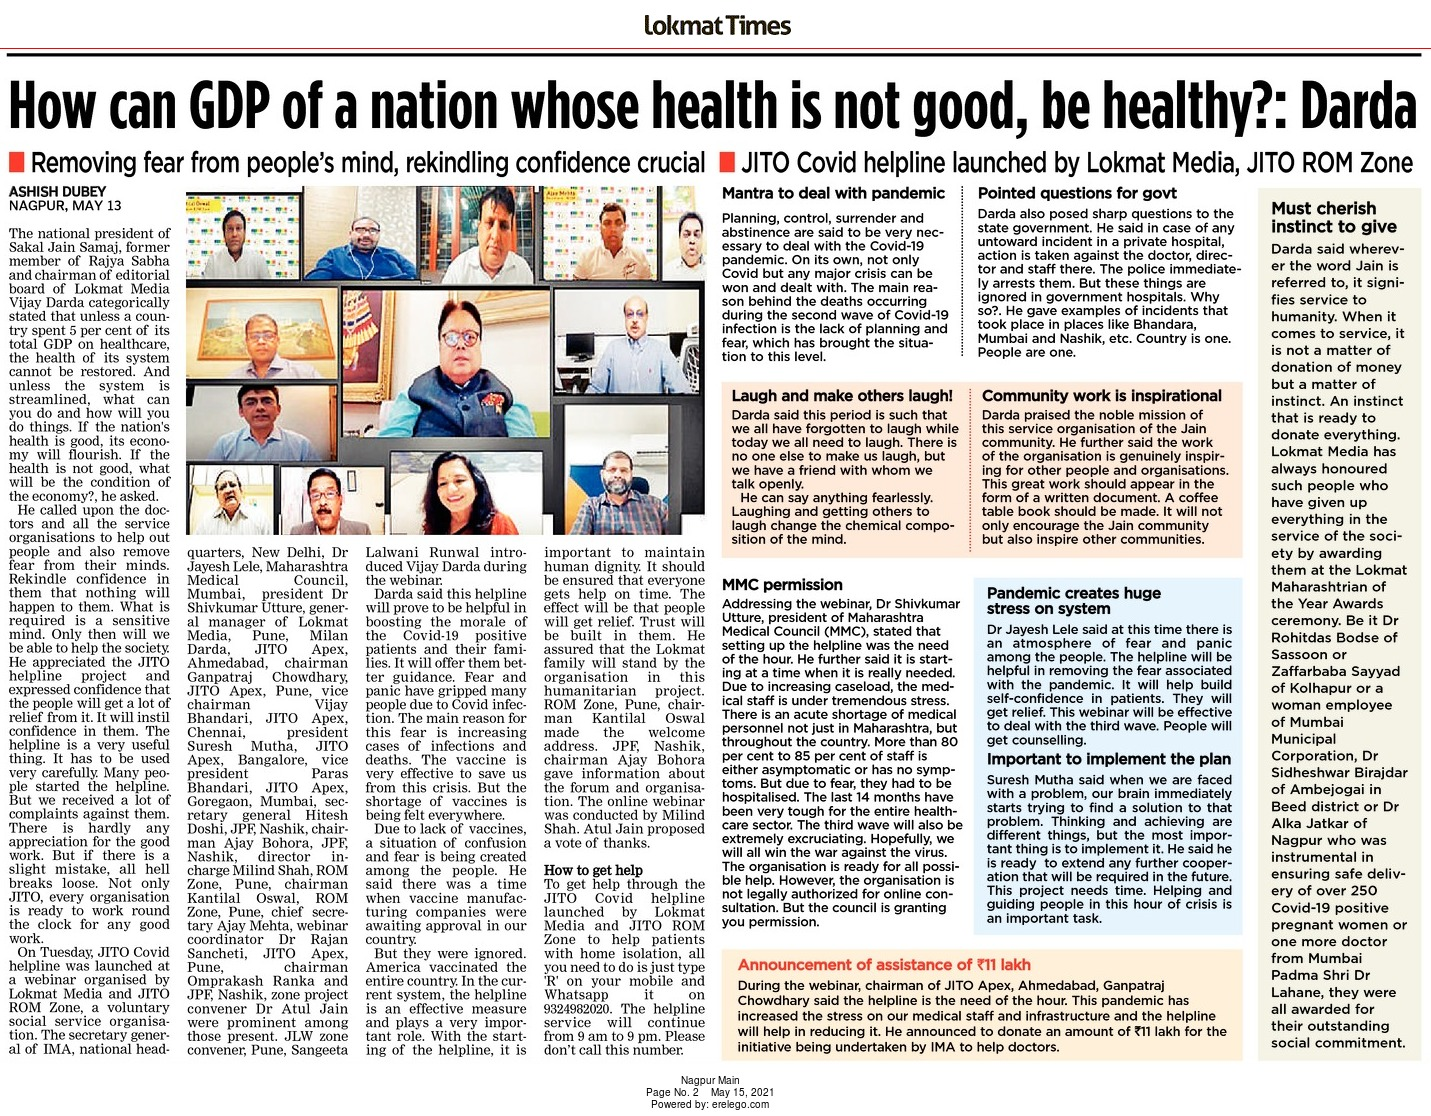 How can GDP of a nation whose health is not good, be healthy?: Darda